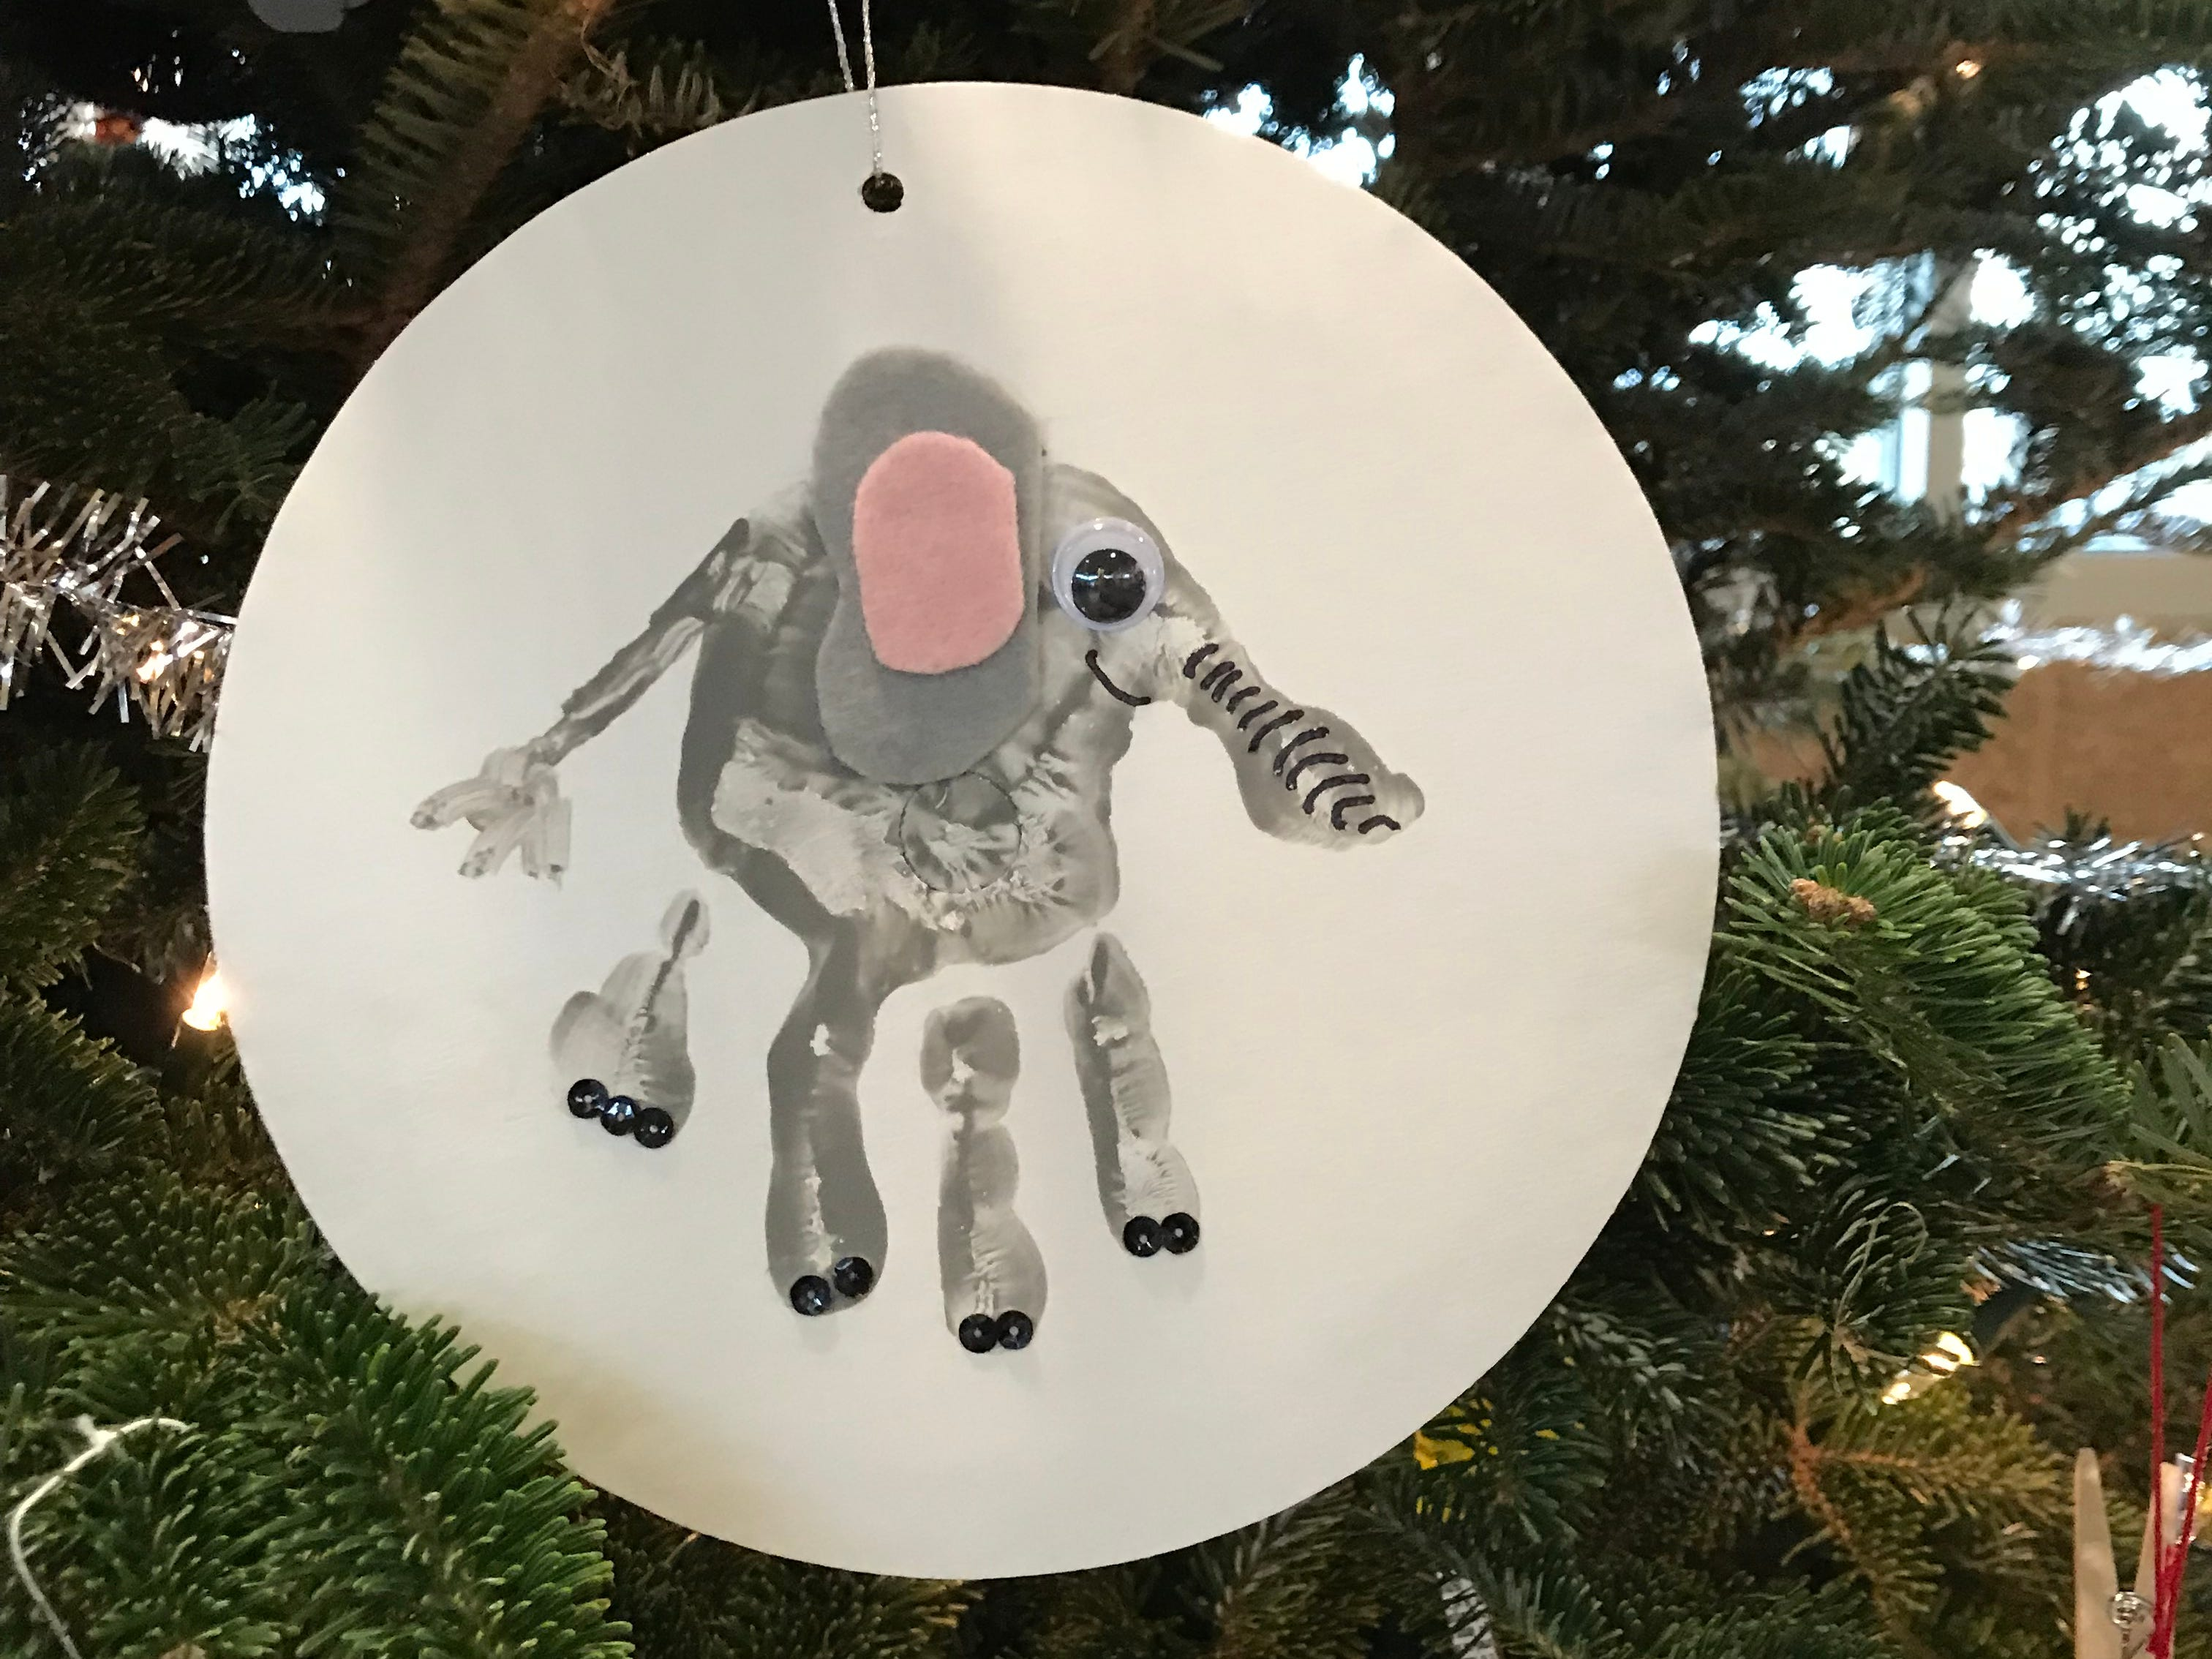 Handprints are one of the most popular ways to make kid art, including ornaments, like this one from the Brookfield Blazers 4H tree at the Milwaukee County Zoo.